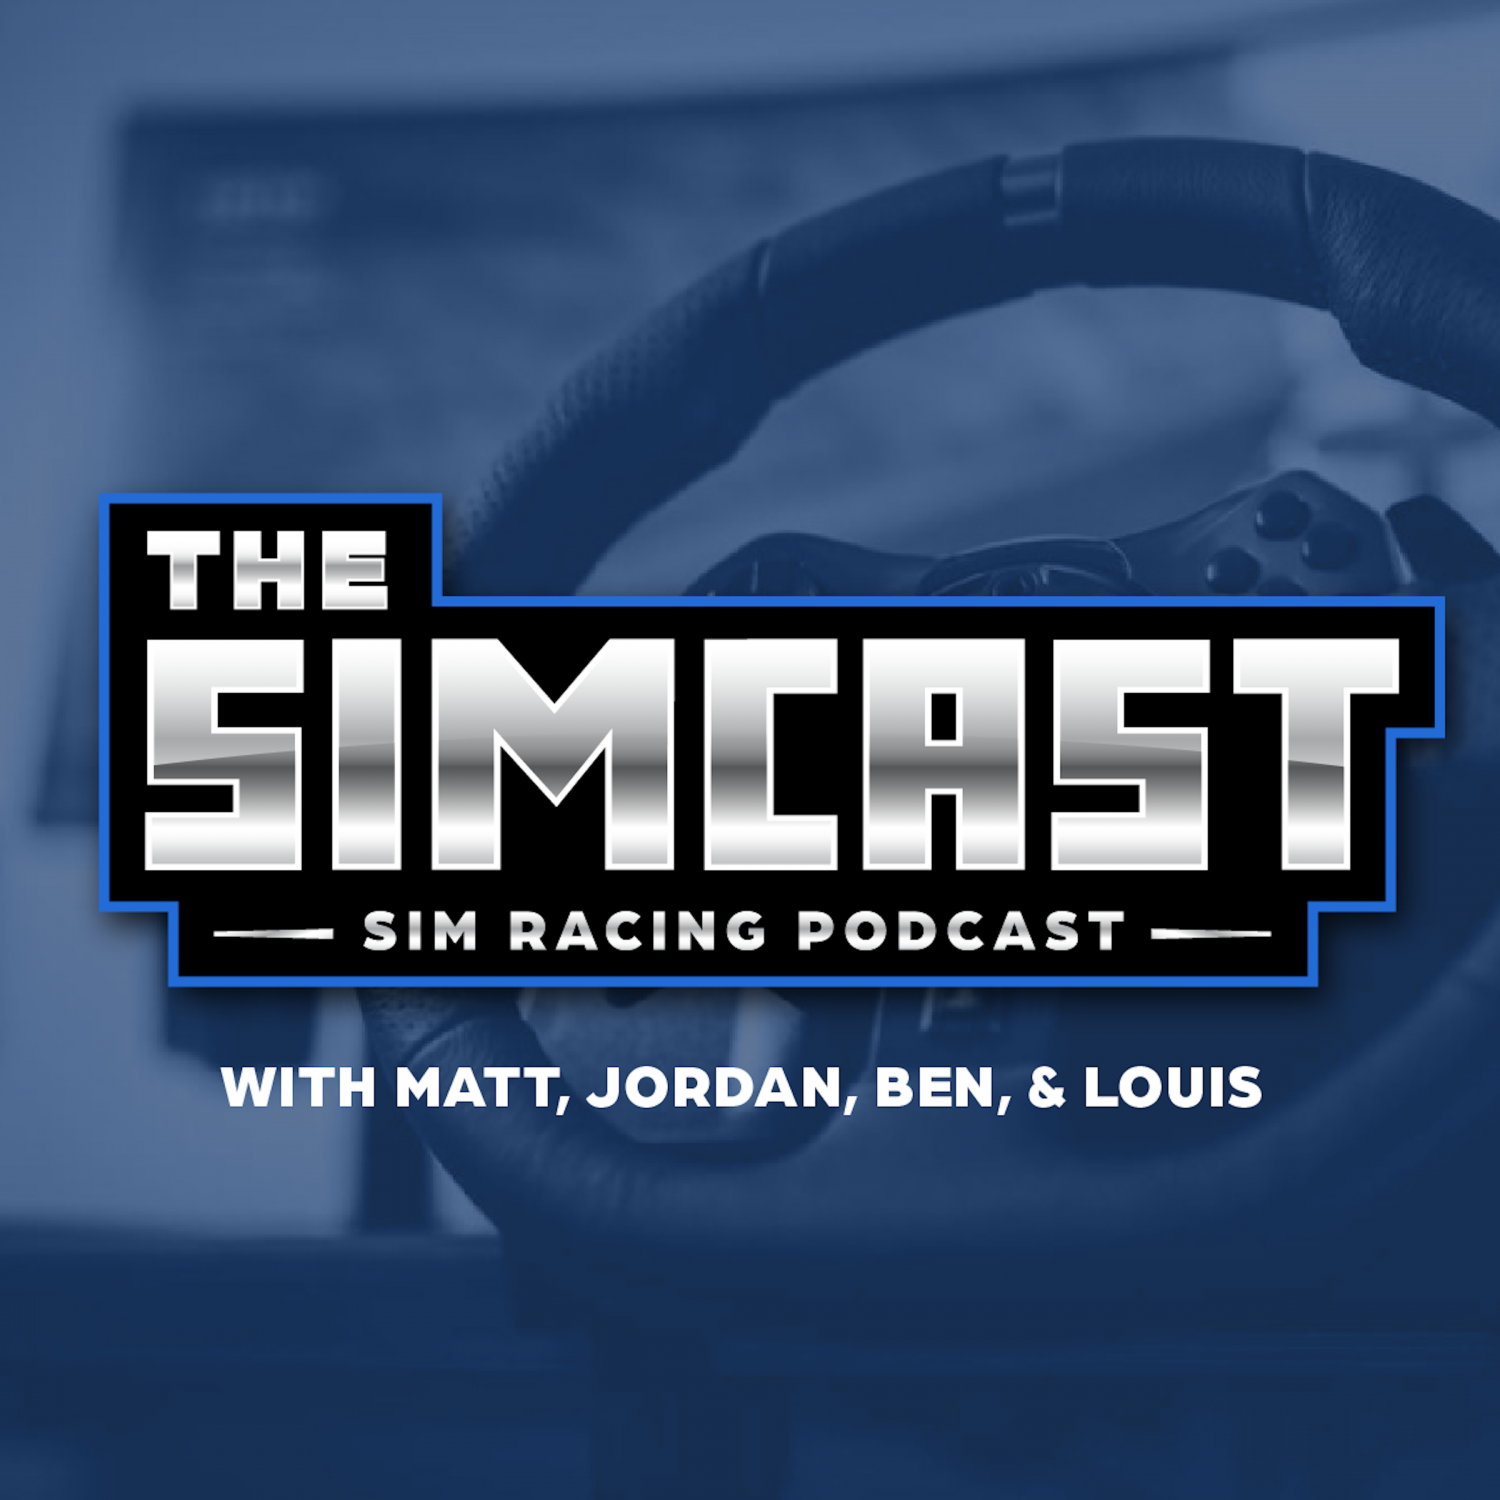 The SimCast series 1 episode 3